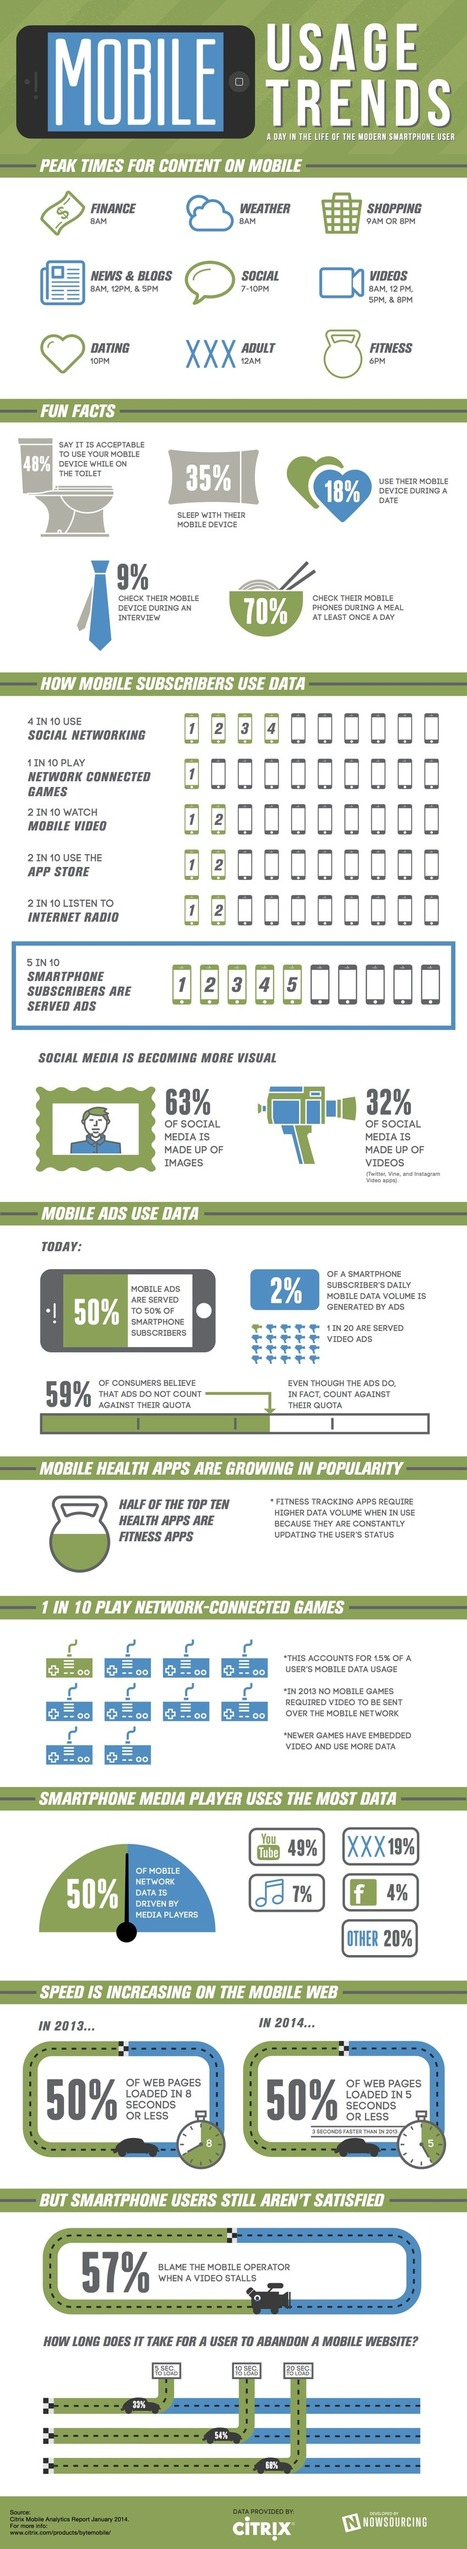 A Day in the Life of the Modern Smartphone User [Infographic] | Digital Landscape | Scoop.it